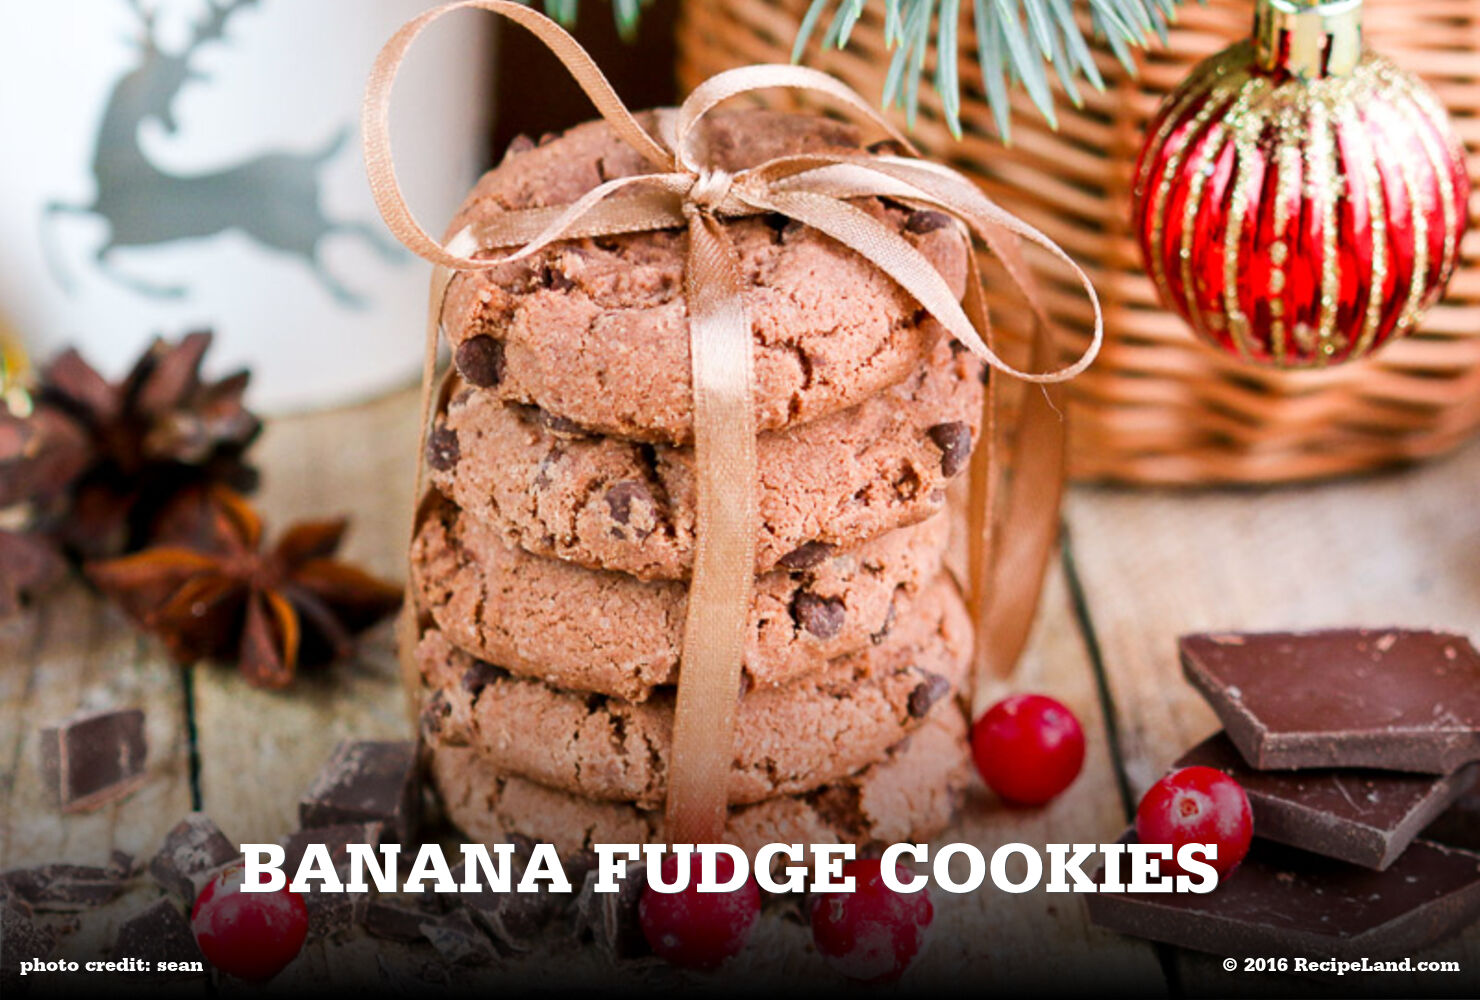 Banana Fudge Cookies